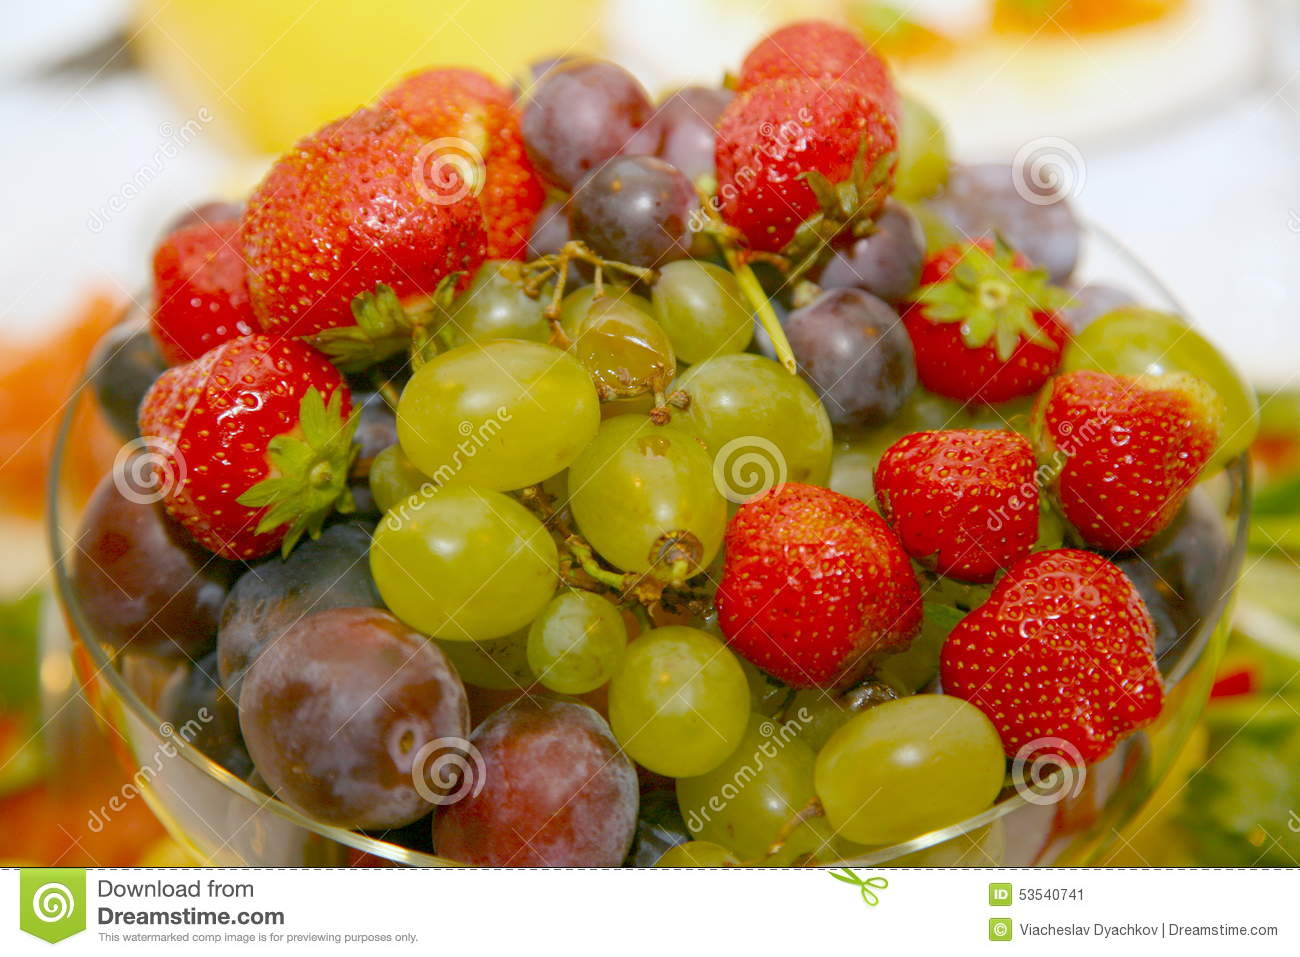 Photo Of Beautiful And Delicious Fruits And Berries, Grapes.